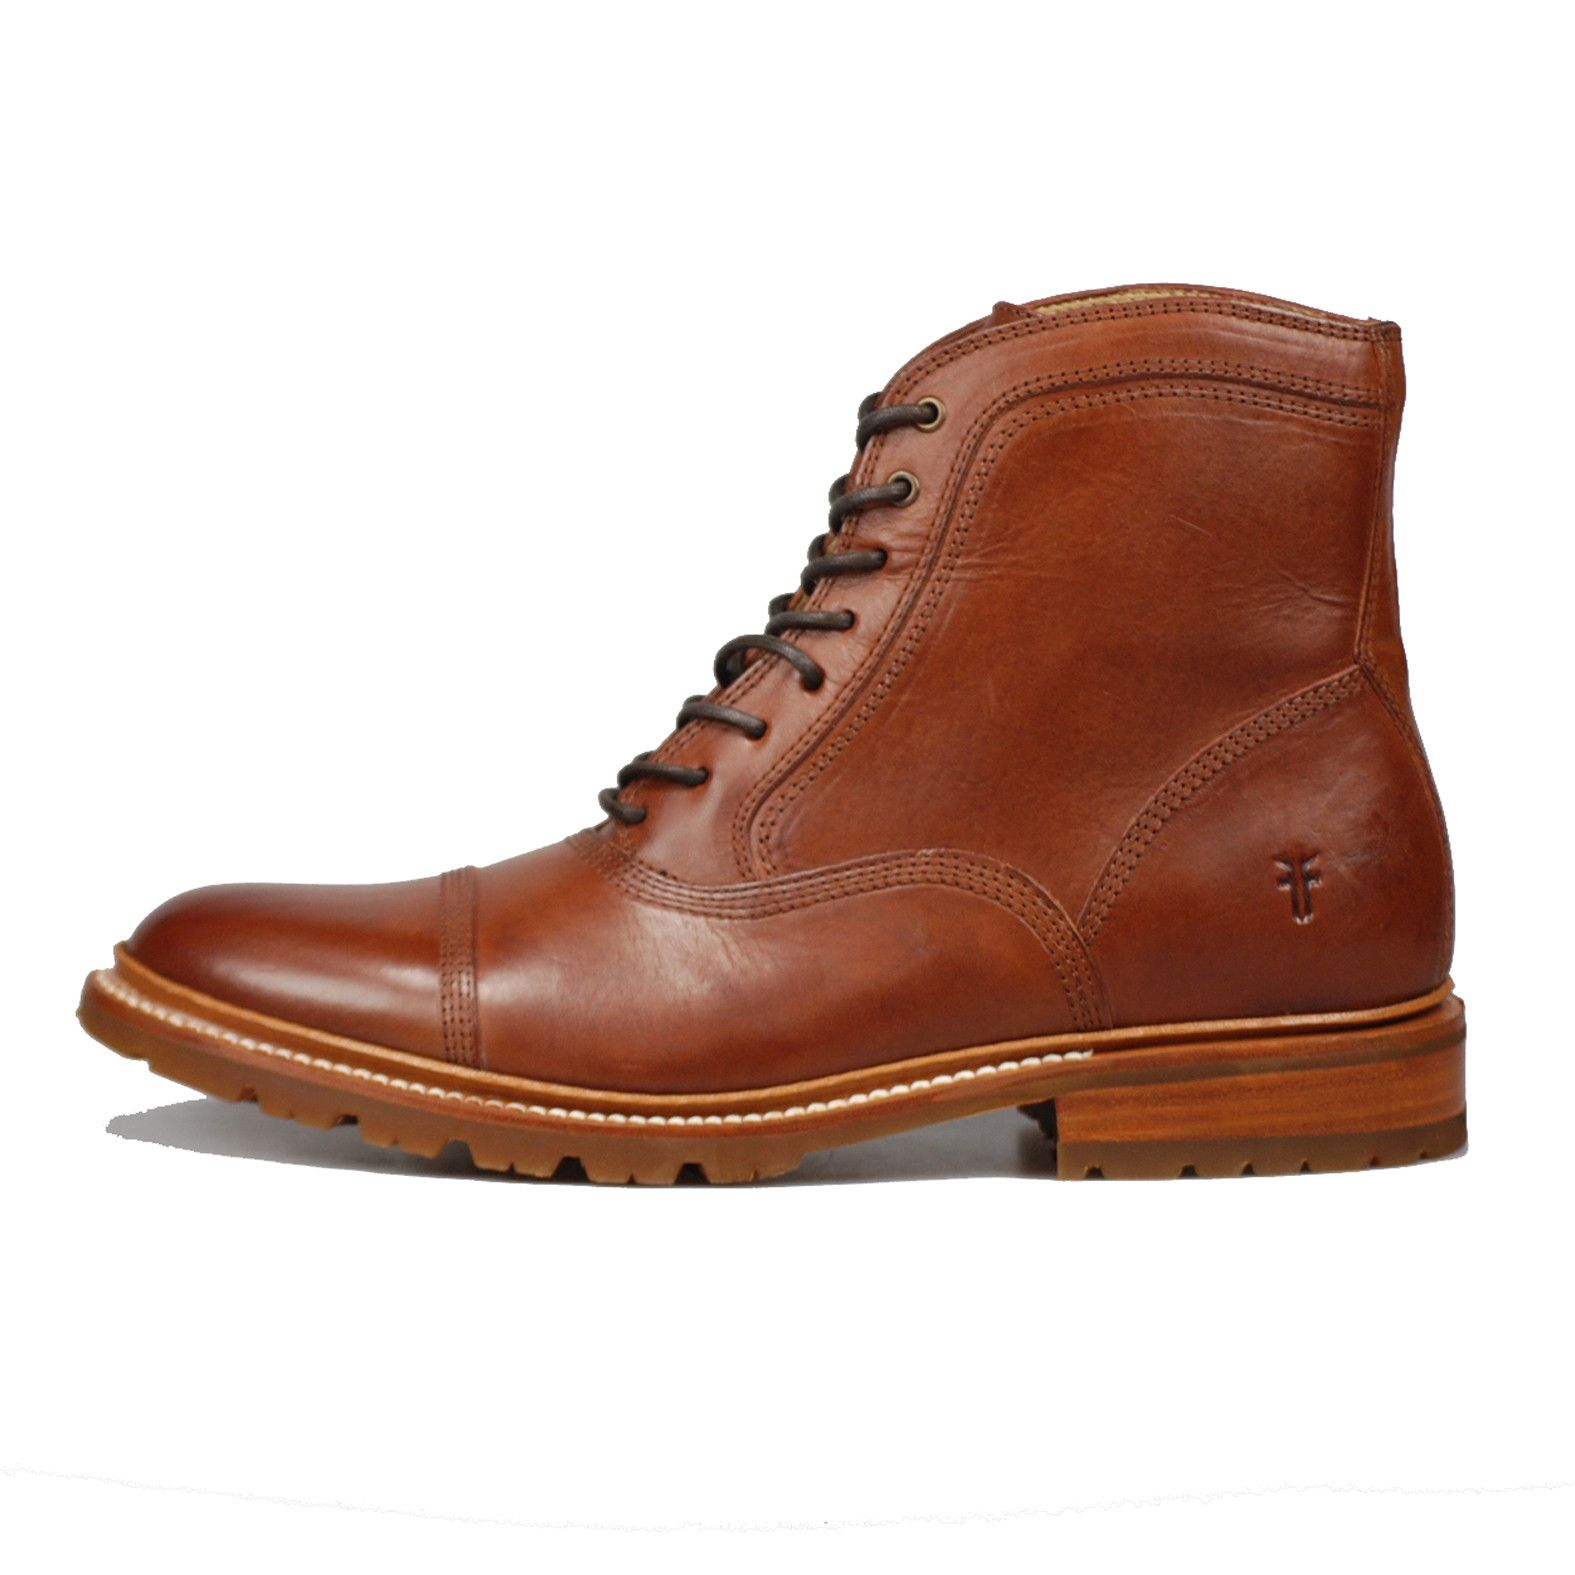 Frye James Bal Lug Boot - Leather lined - Rubber outsole - 6